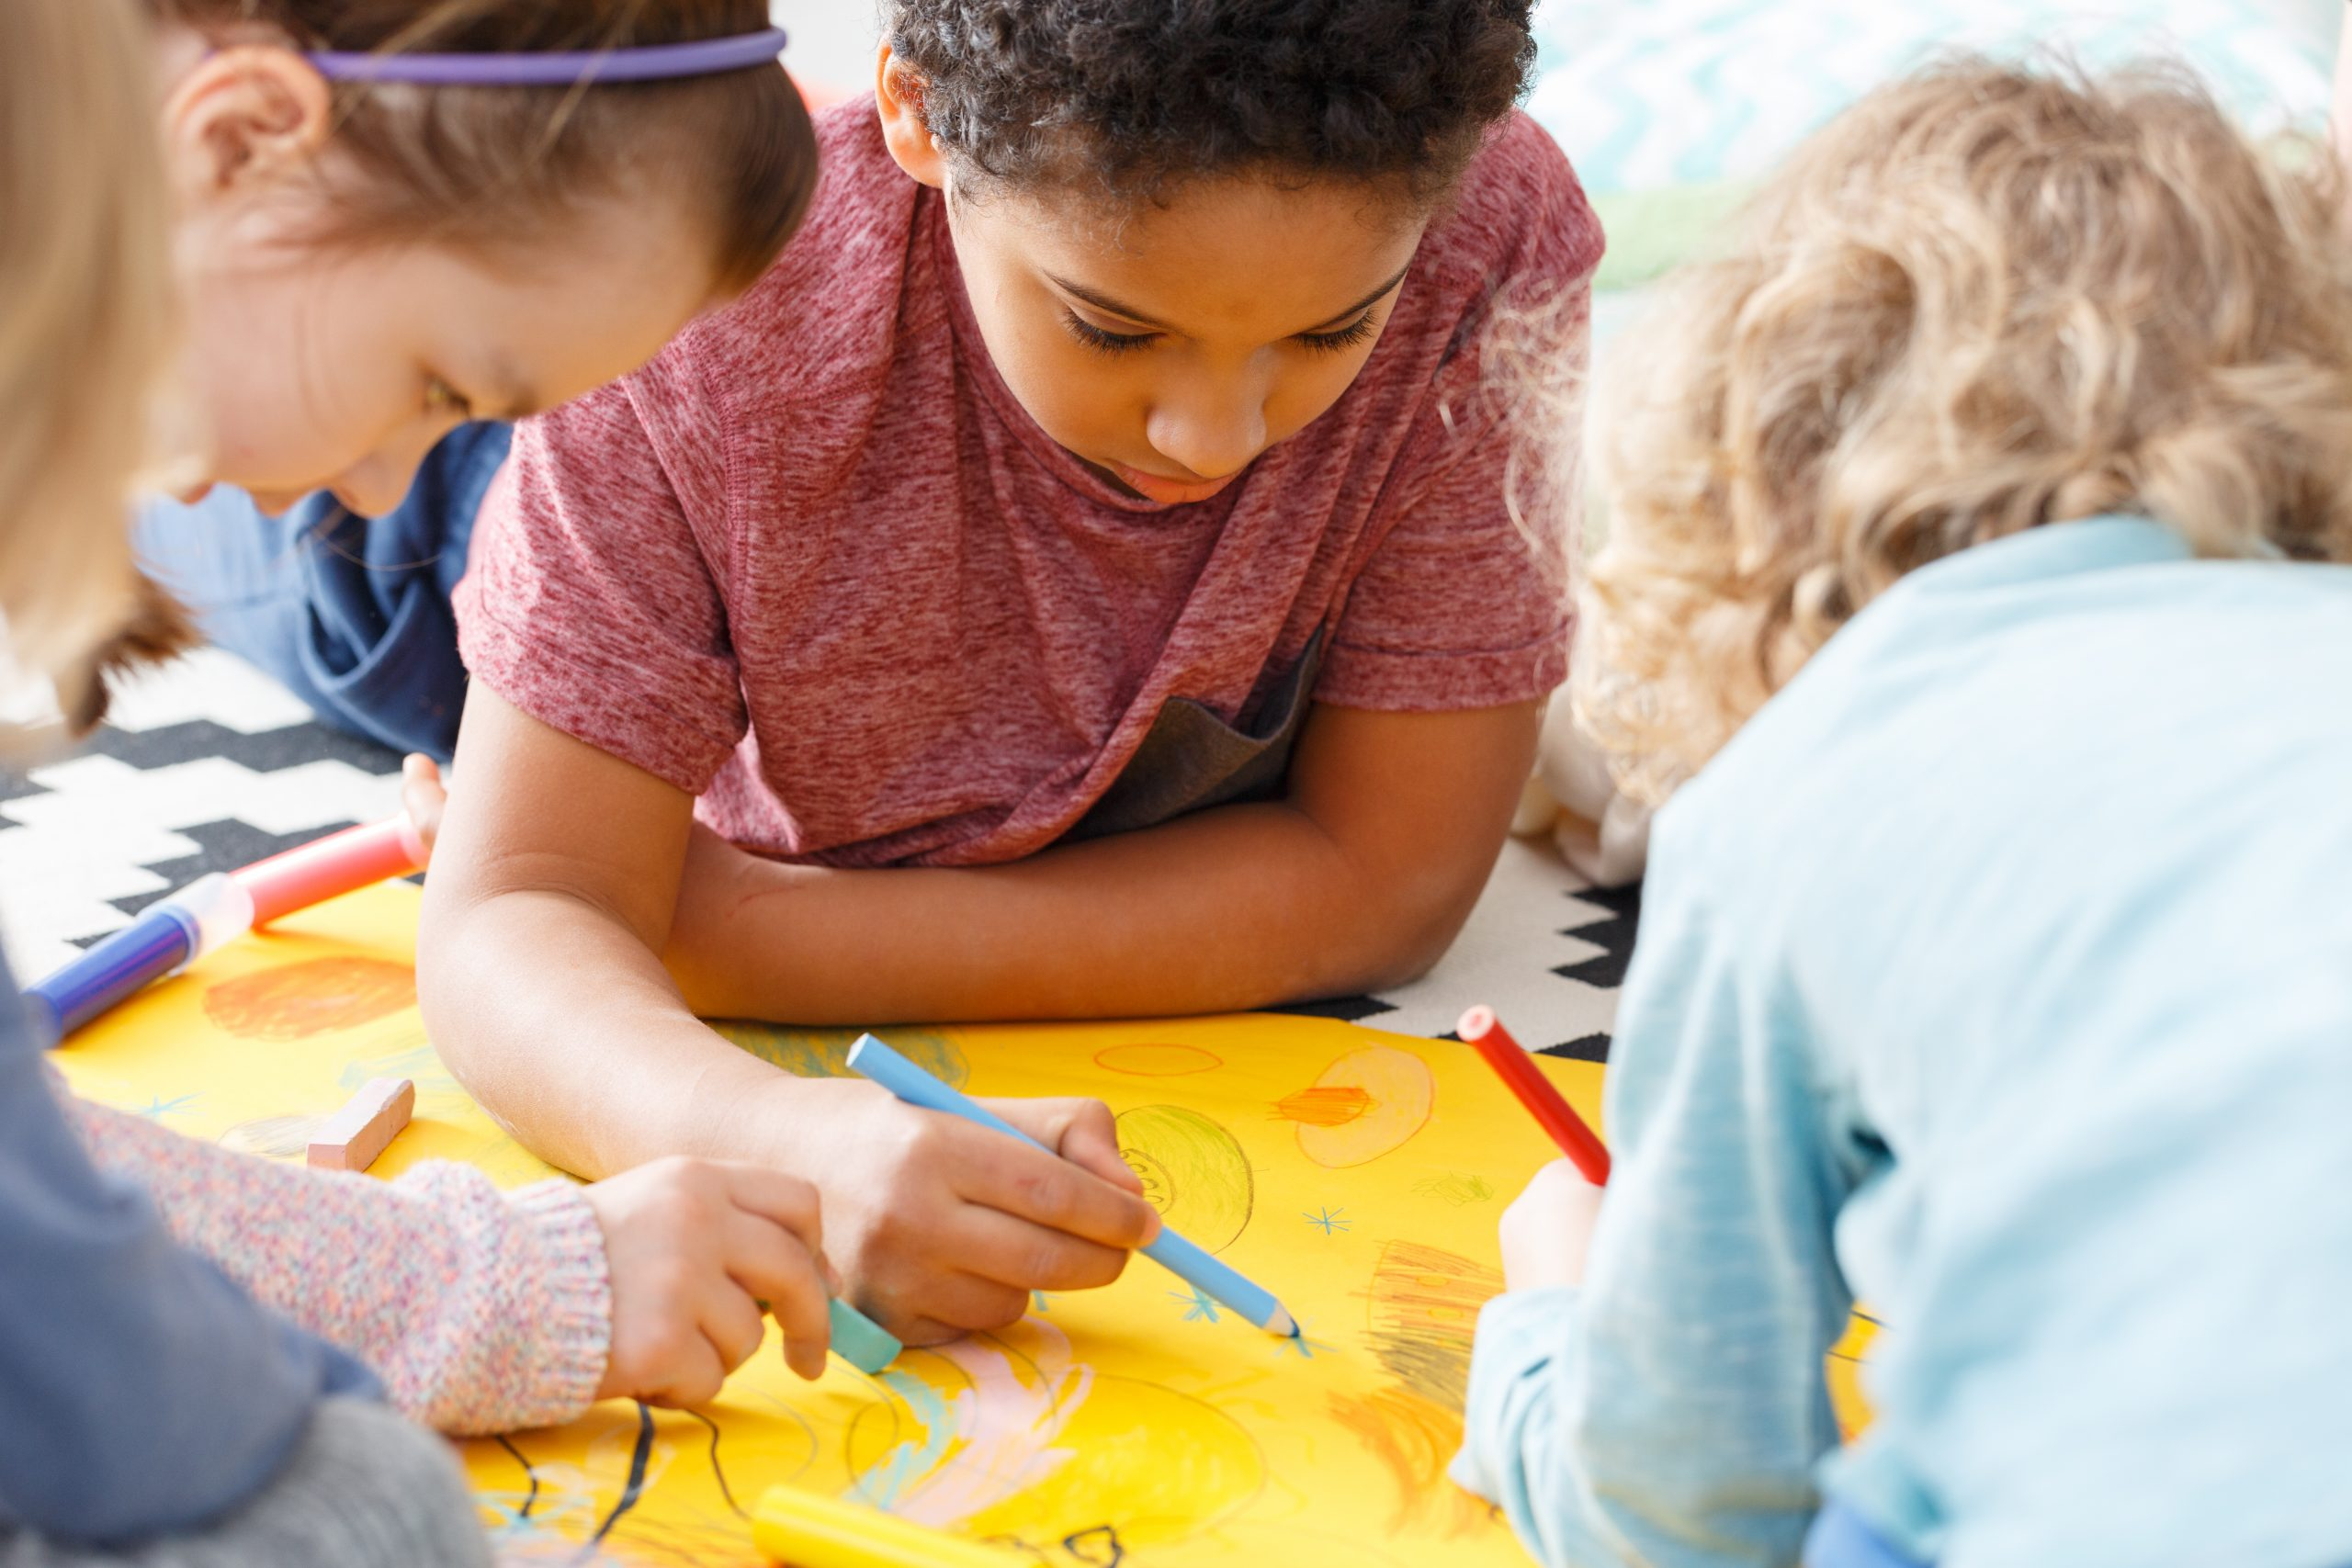 Young children having fun during art lesson in school